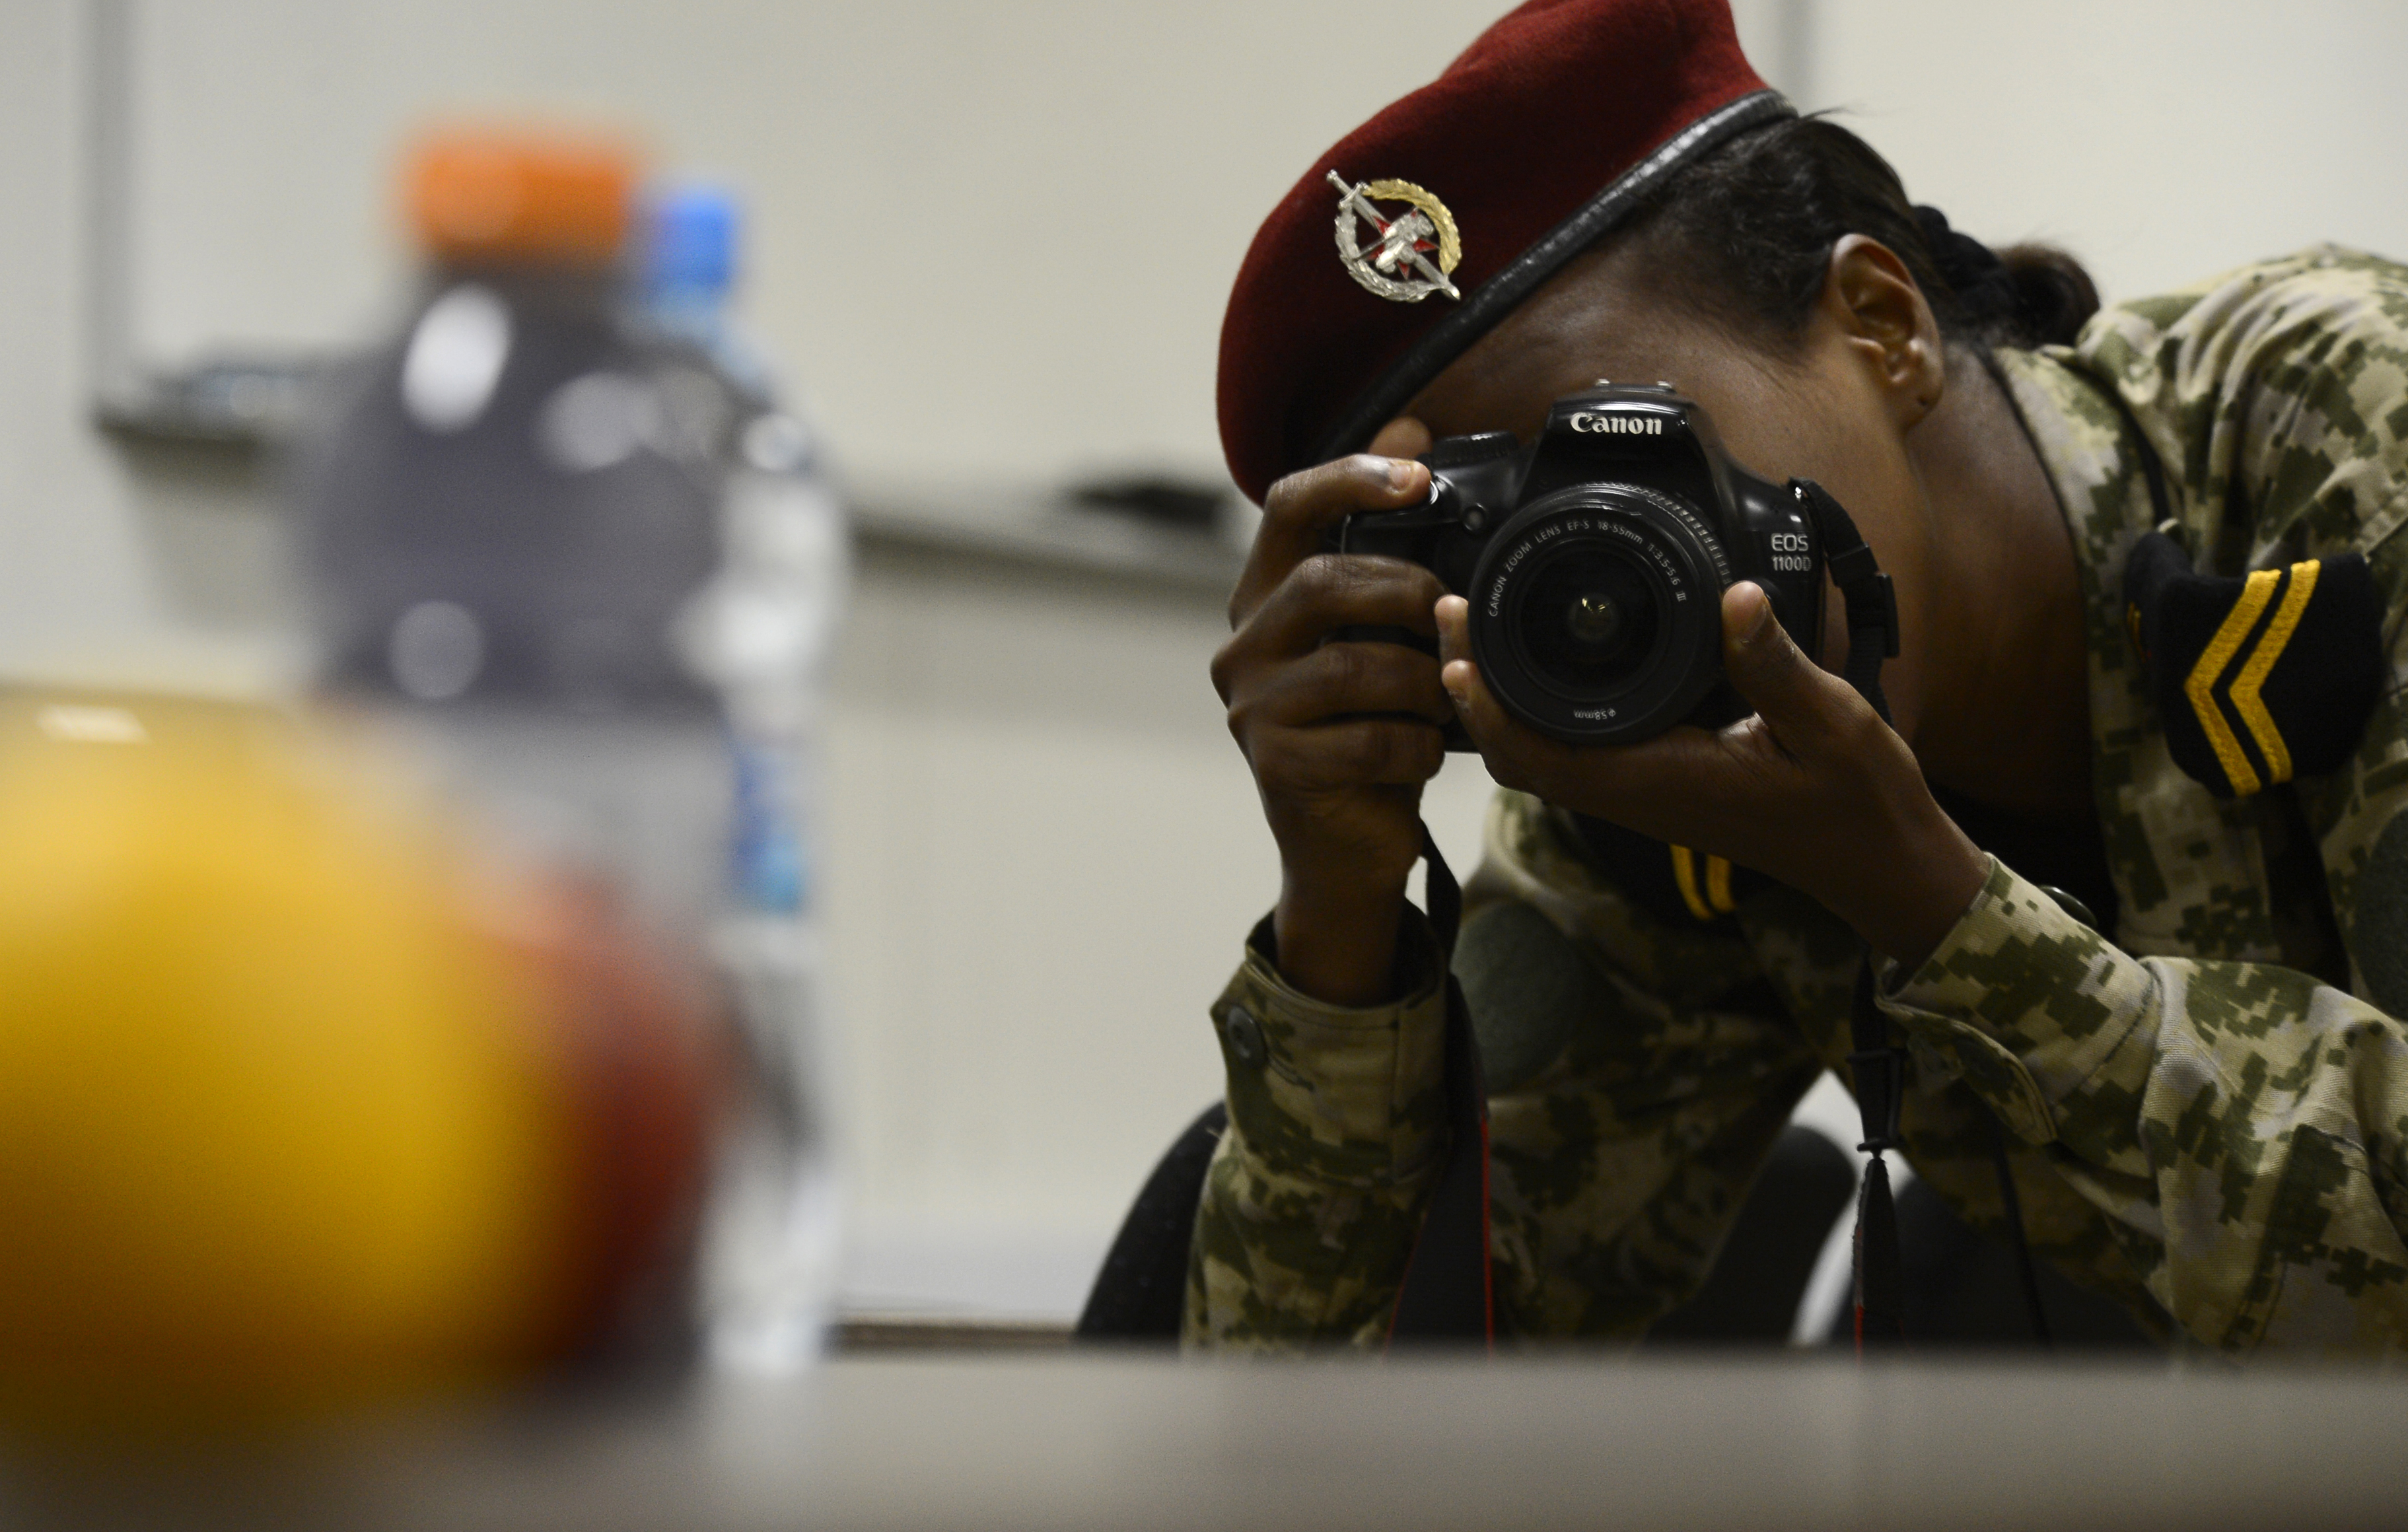 Sgt. Fatouma Gouled of the Djibouti Armed Forces (FAD) takes a photo demonstrating photography techniques Dec. 2, 2015, at Camp Lemonnier, Djibouti. The weeklong FAD public affairs engagement provided participants with information and experience needed to improve their photography and videography abilities. (U.S. Air Force photo by Senior Airman Peter Thompson)